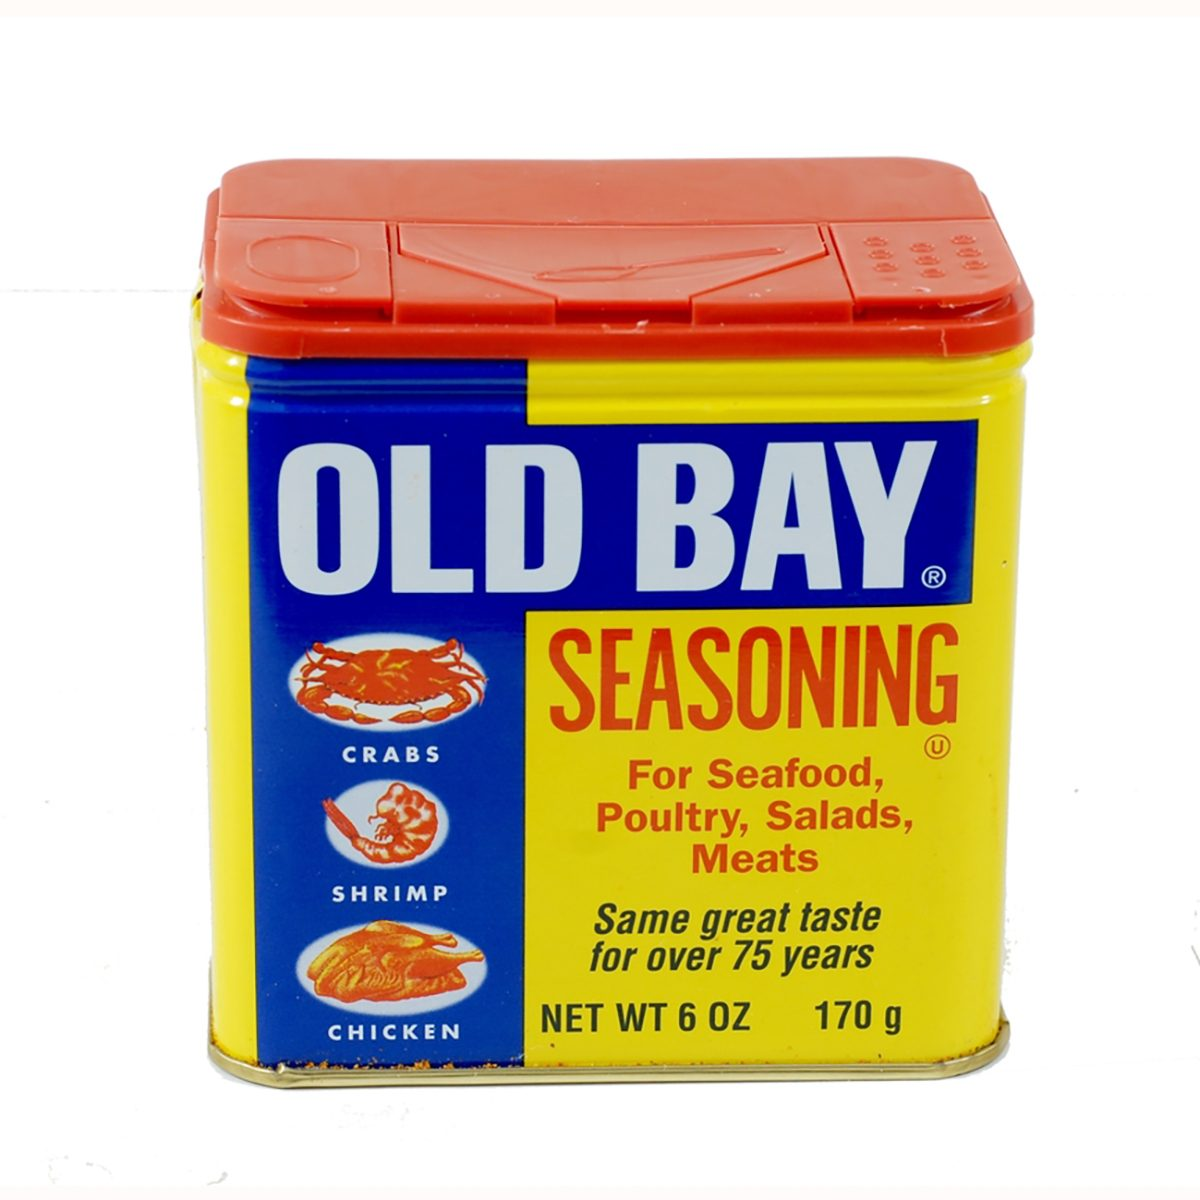 A can of Old Bay Seasoning made by McCormick in the Chesapeake Bay area in Maryland.